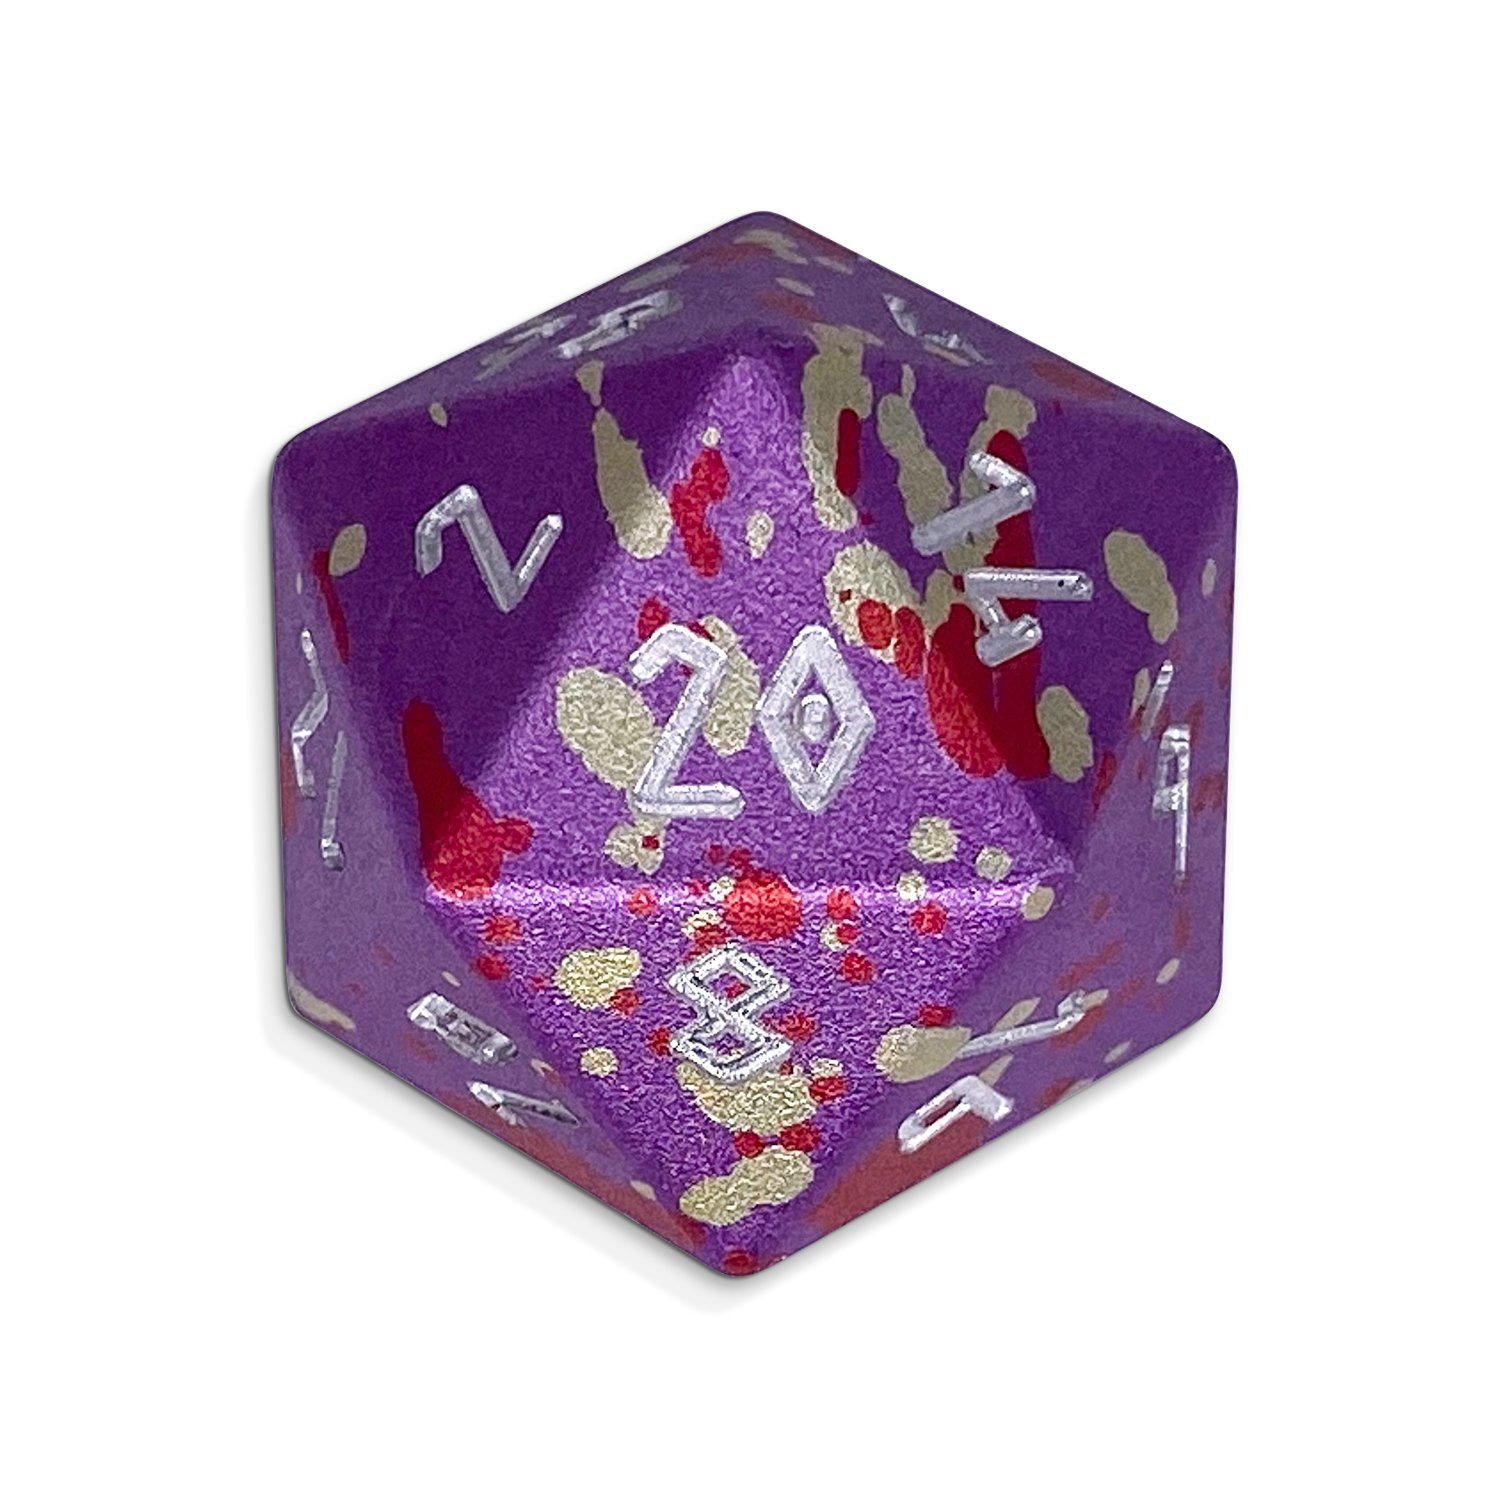 Single Wondrous Dice® D20 in Purple Wyrm by Norse Foundry® 6063 Aircraft Grade Aluminum